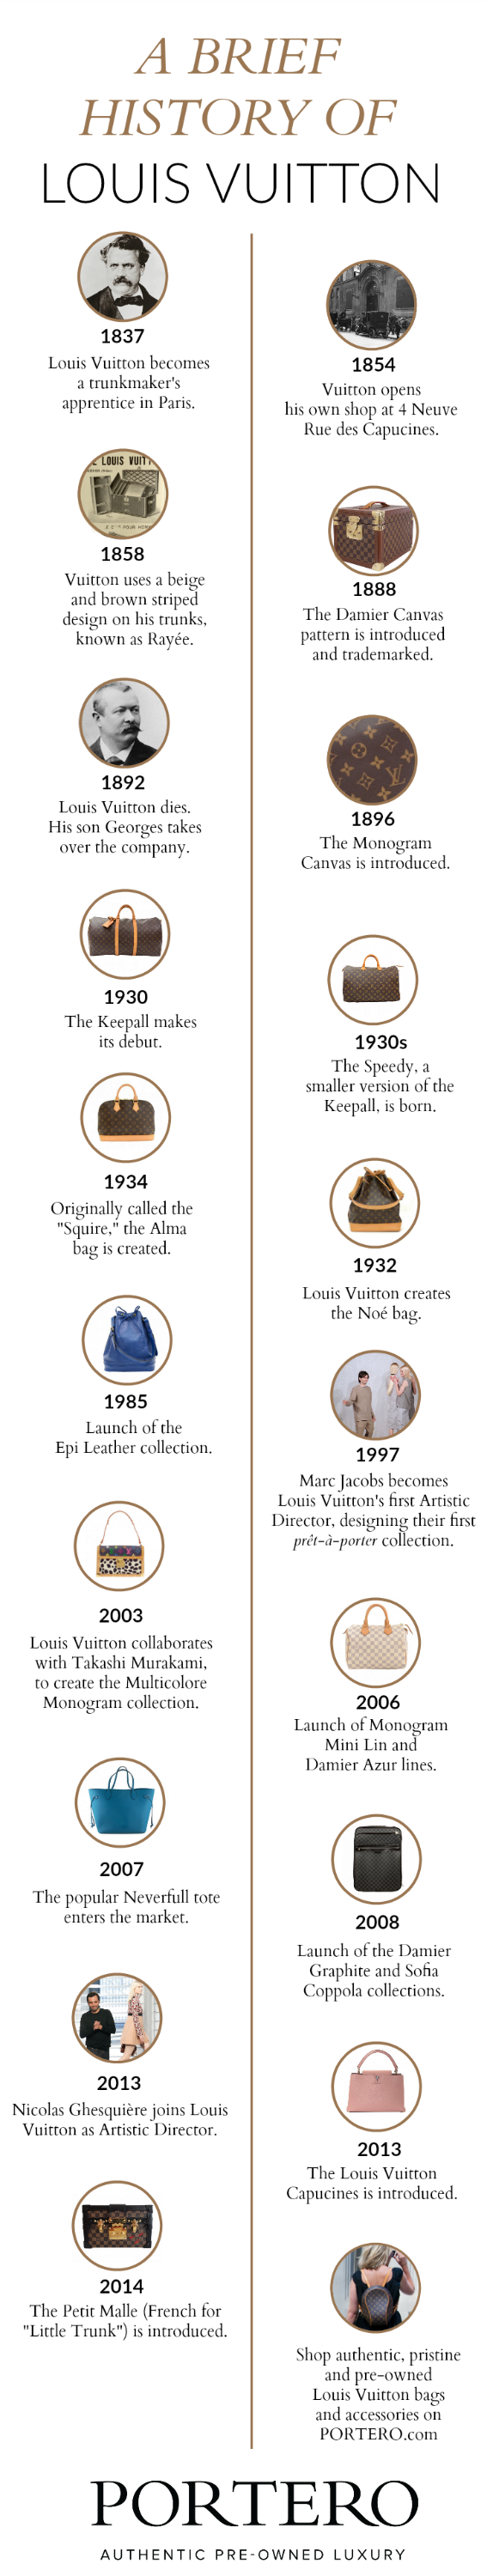 cd76aa8e5b6ab This timeline of the history of Louis Vuitton is a great example of a  well-designed infographic. It has a clear headline title